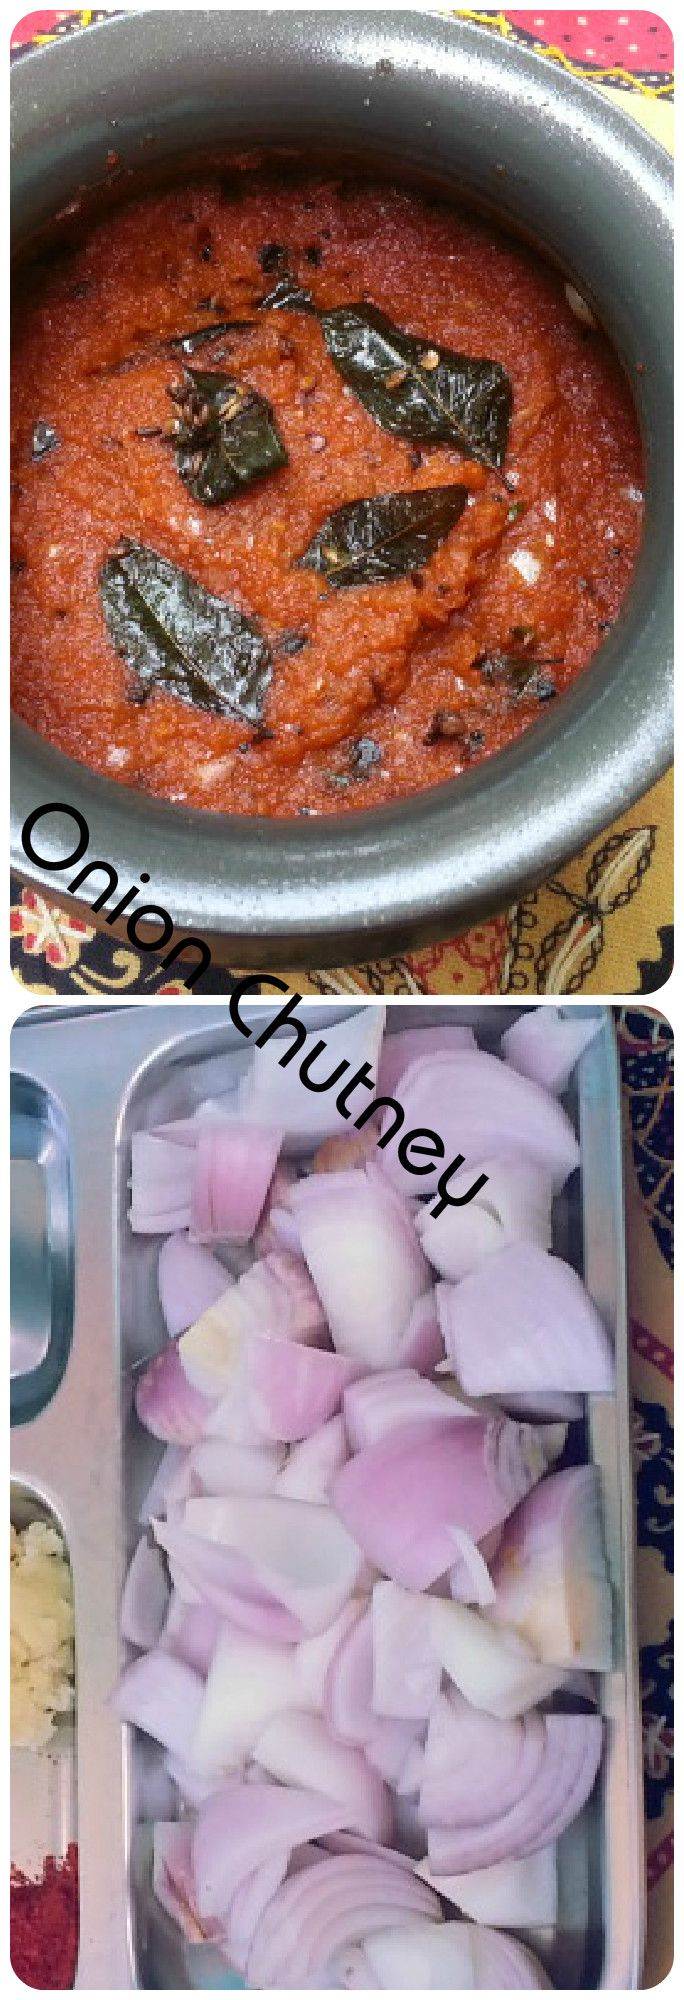 Onion Chutney-Super Spicy,Tang and sweet onion chutney http://www.krishrecipes.com/onion-chutney/